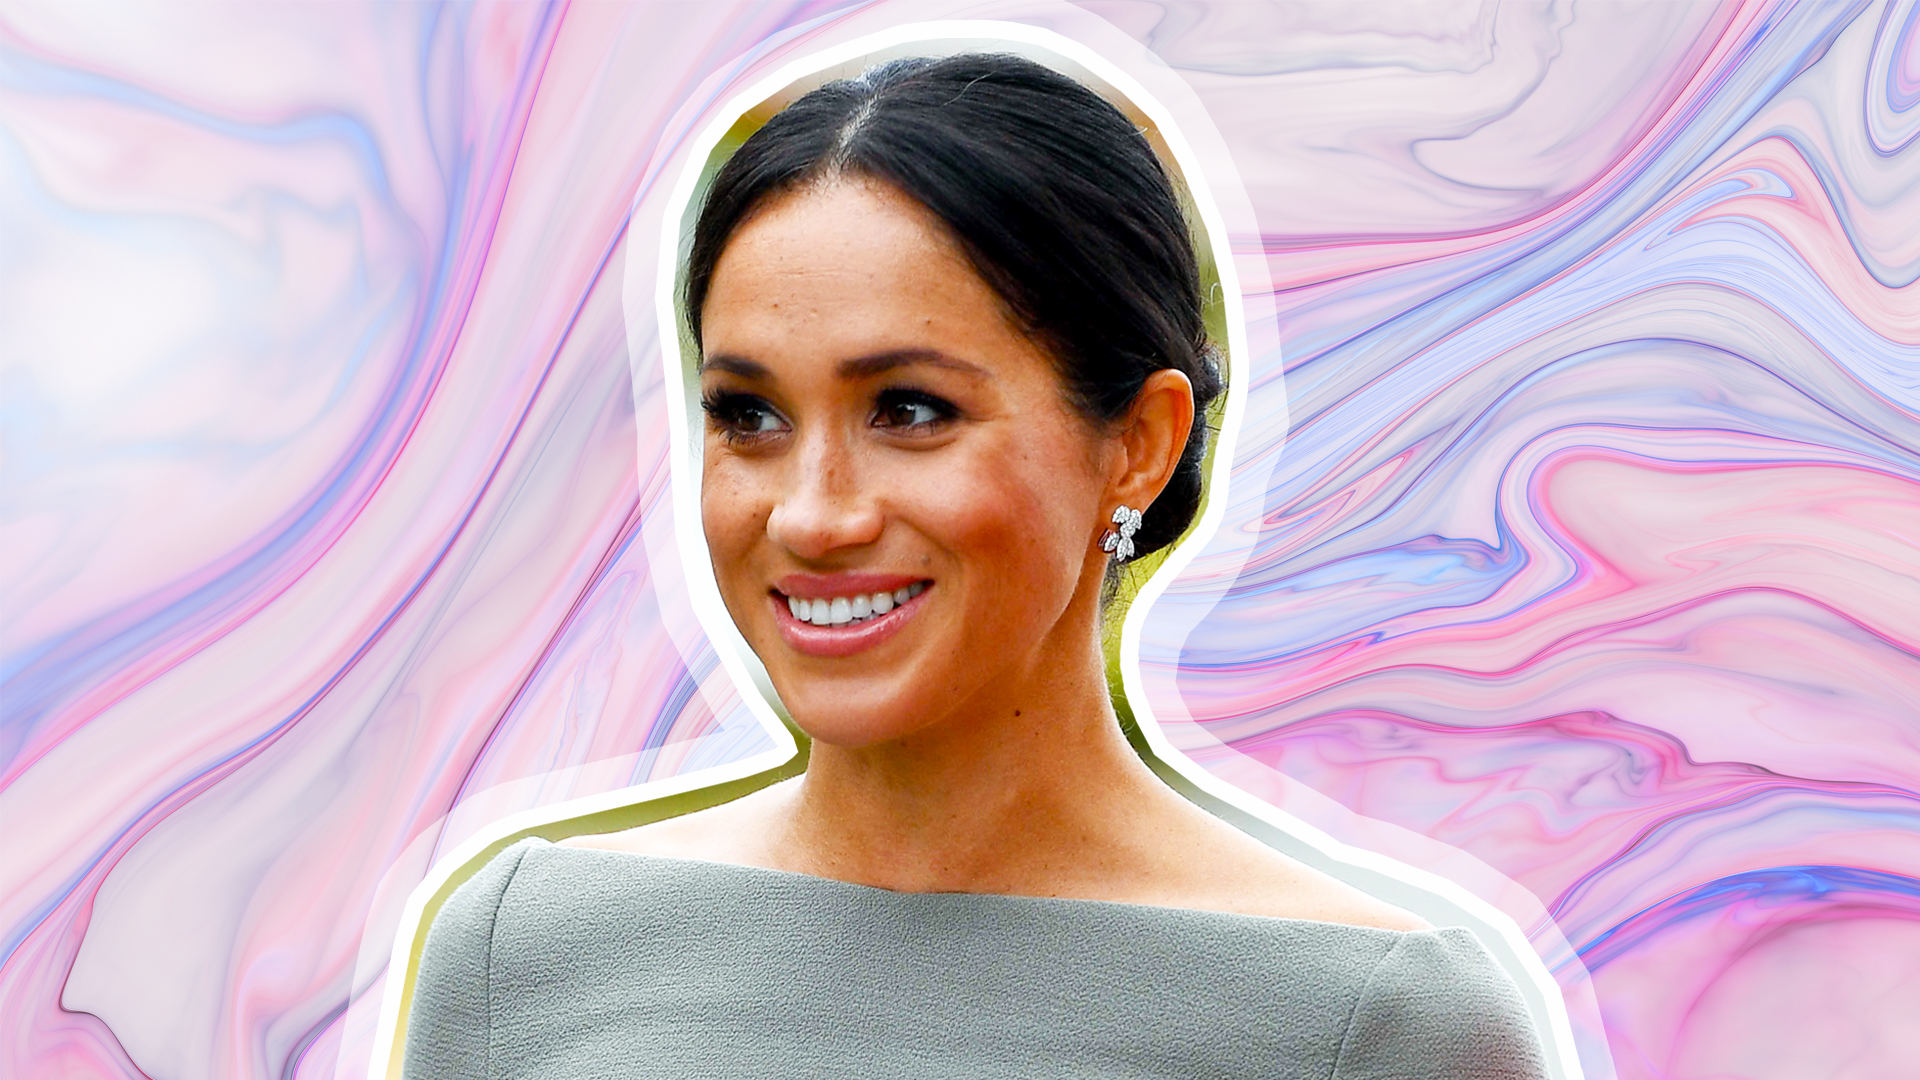 Everything Meghan Markle Has Done Since Becoming Duchess